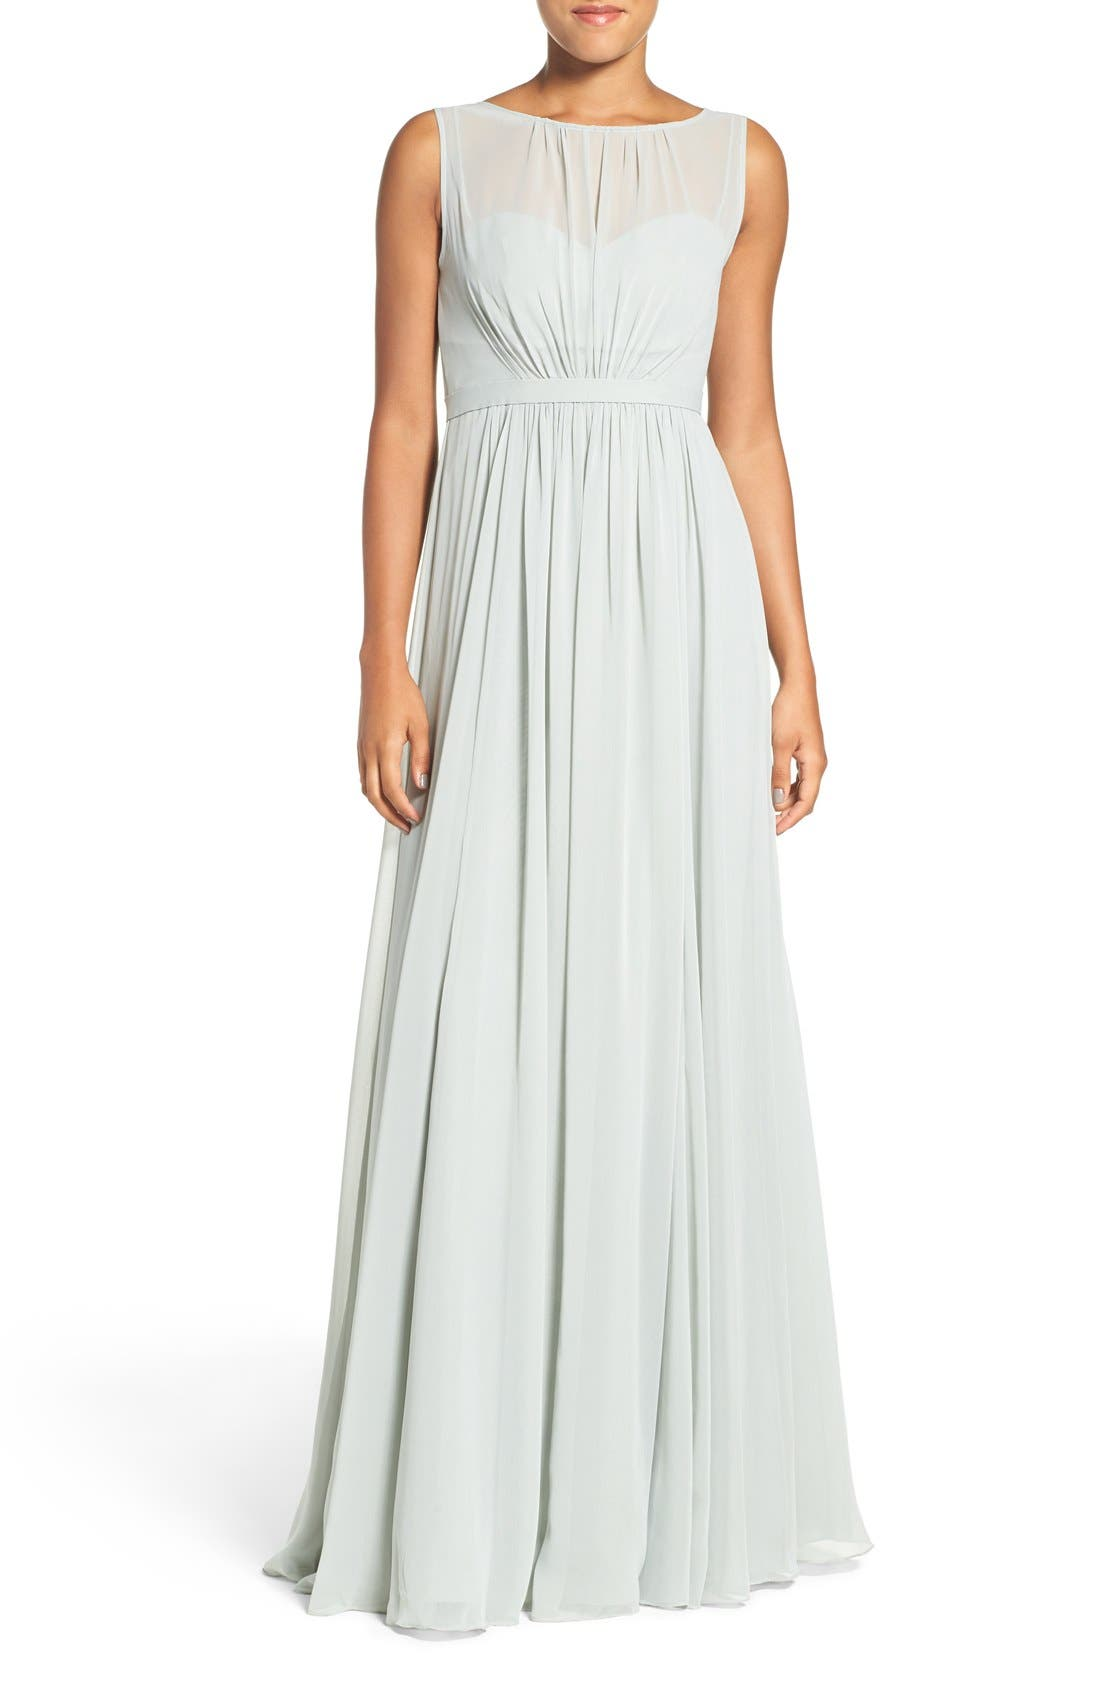 Full bust bridesmaid wedding party dresses nordstrom ombrellifo Image collections